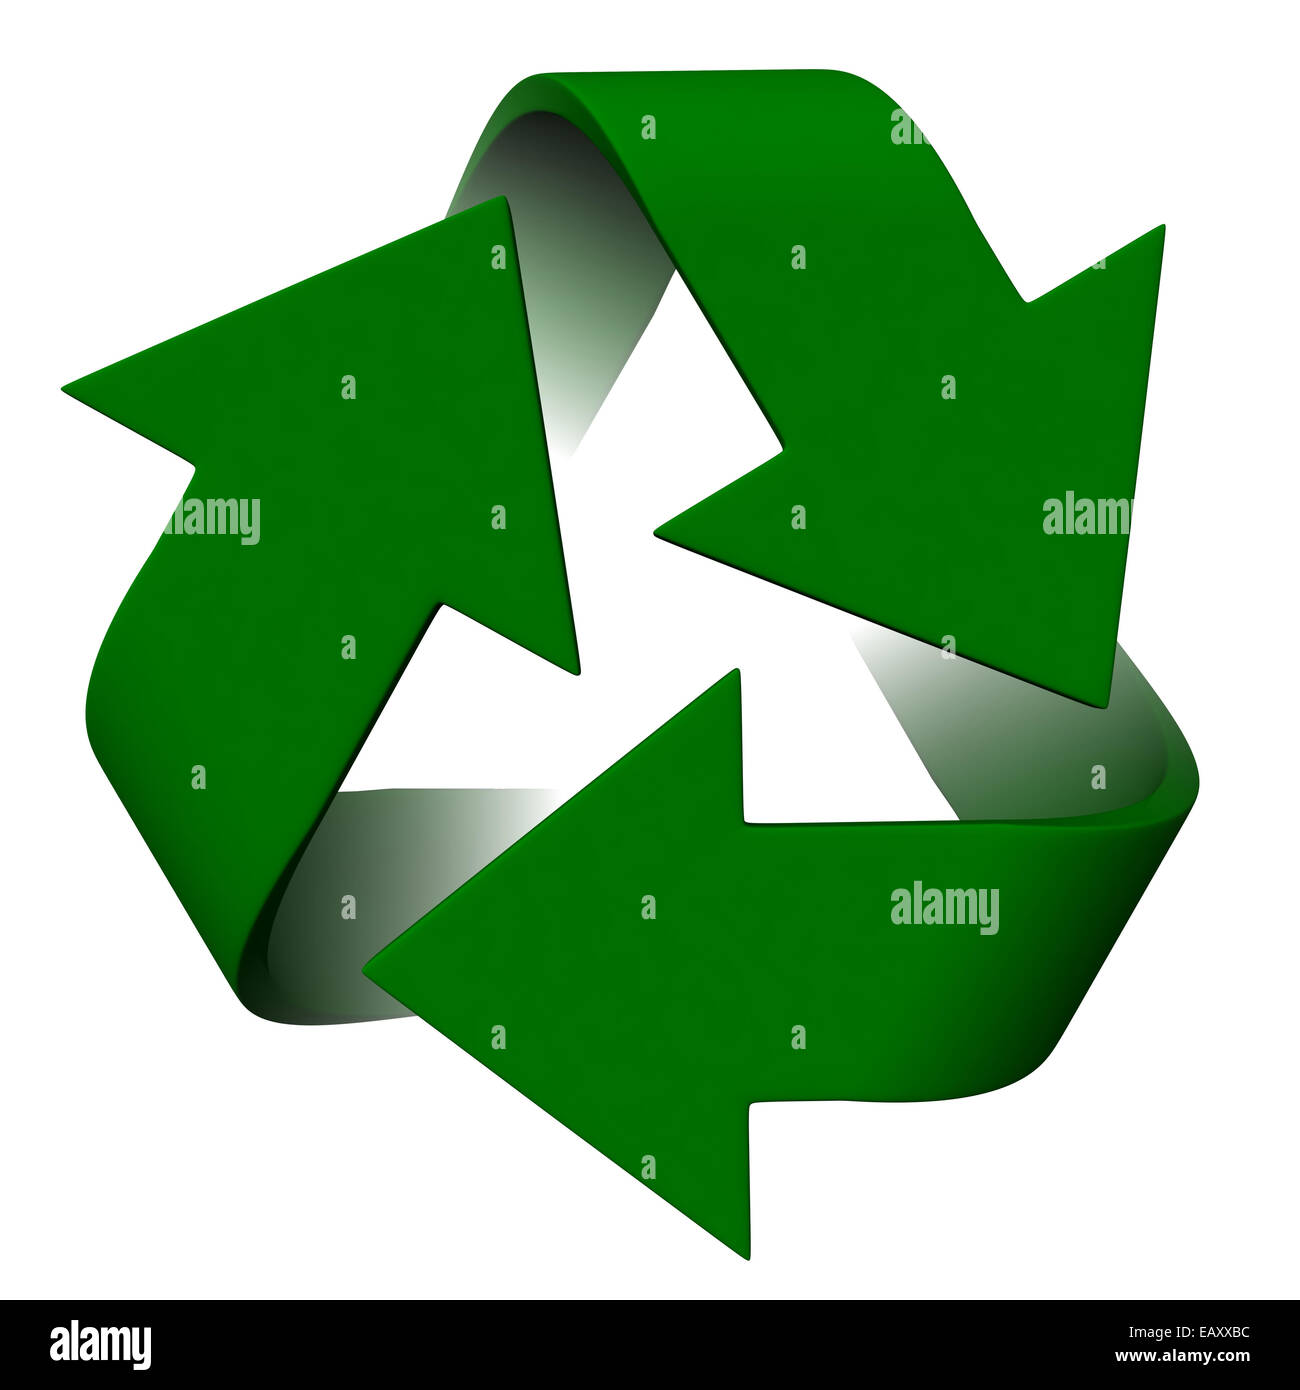 3d render of recycle symbol on white background - Stock Image